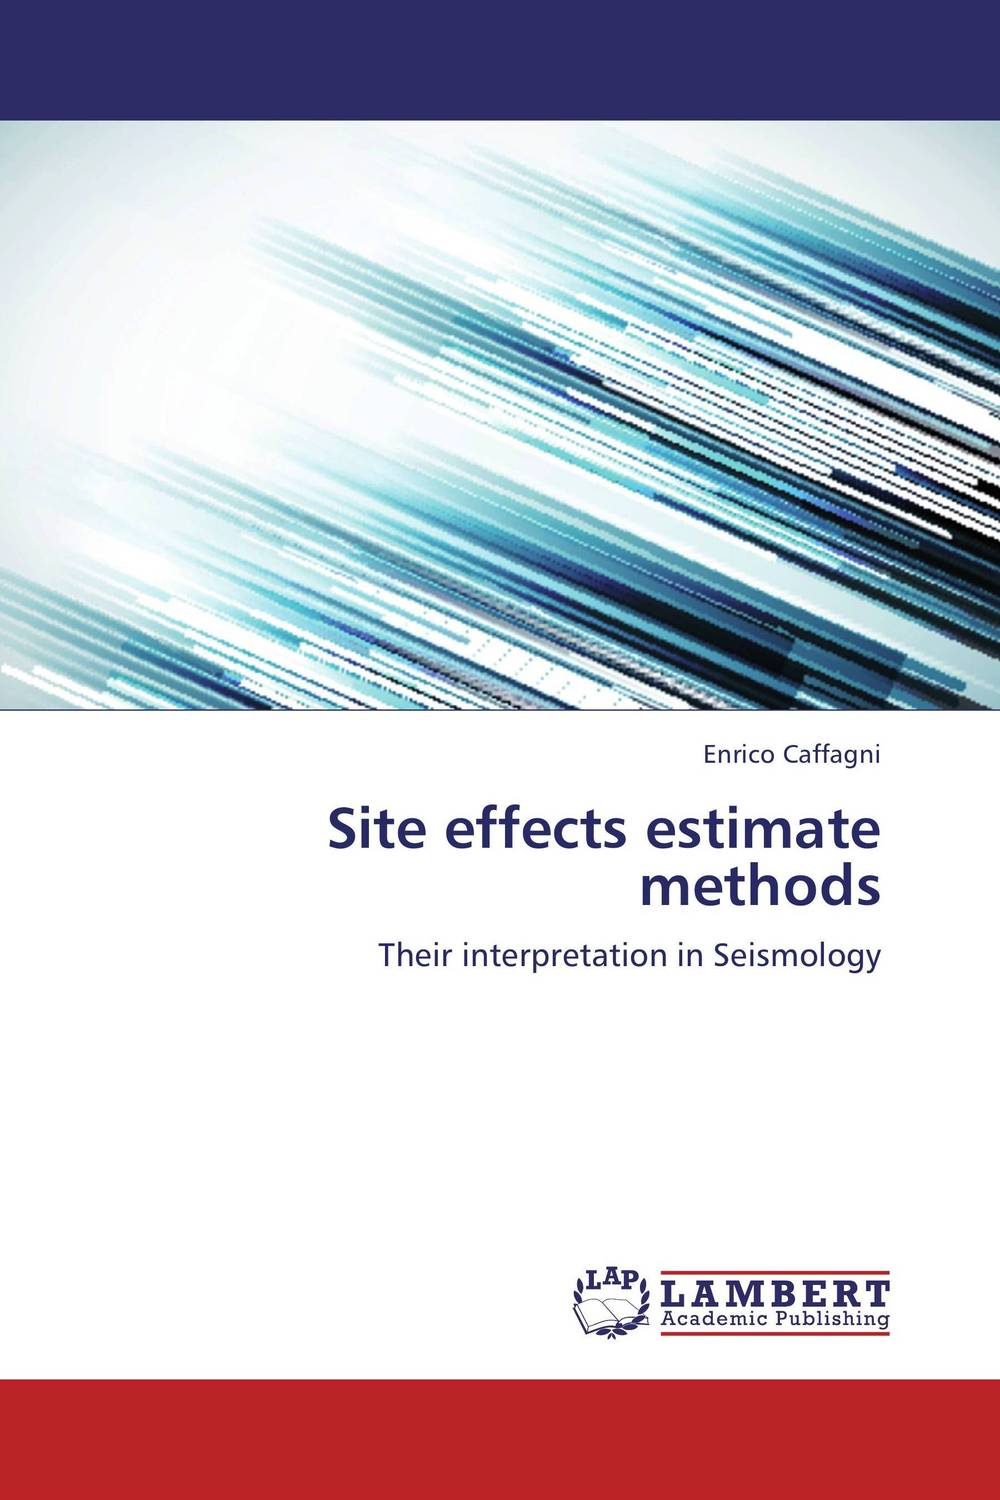 Site effects estimate methods